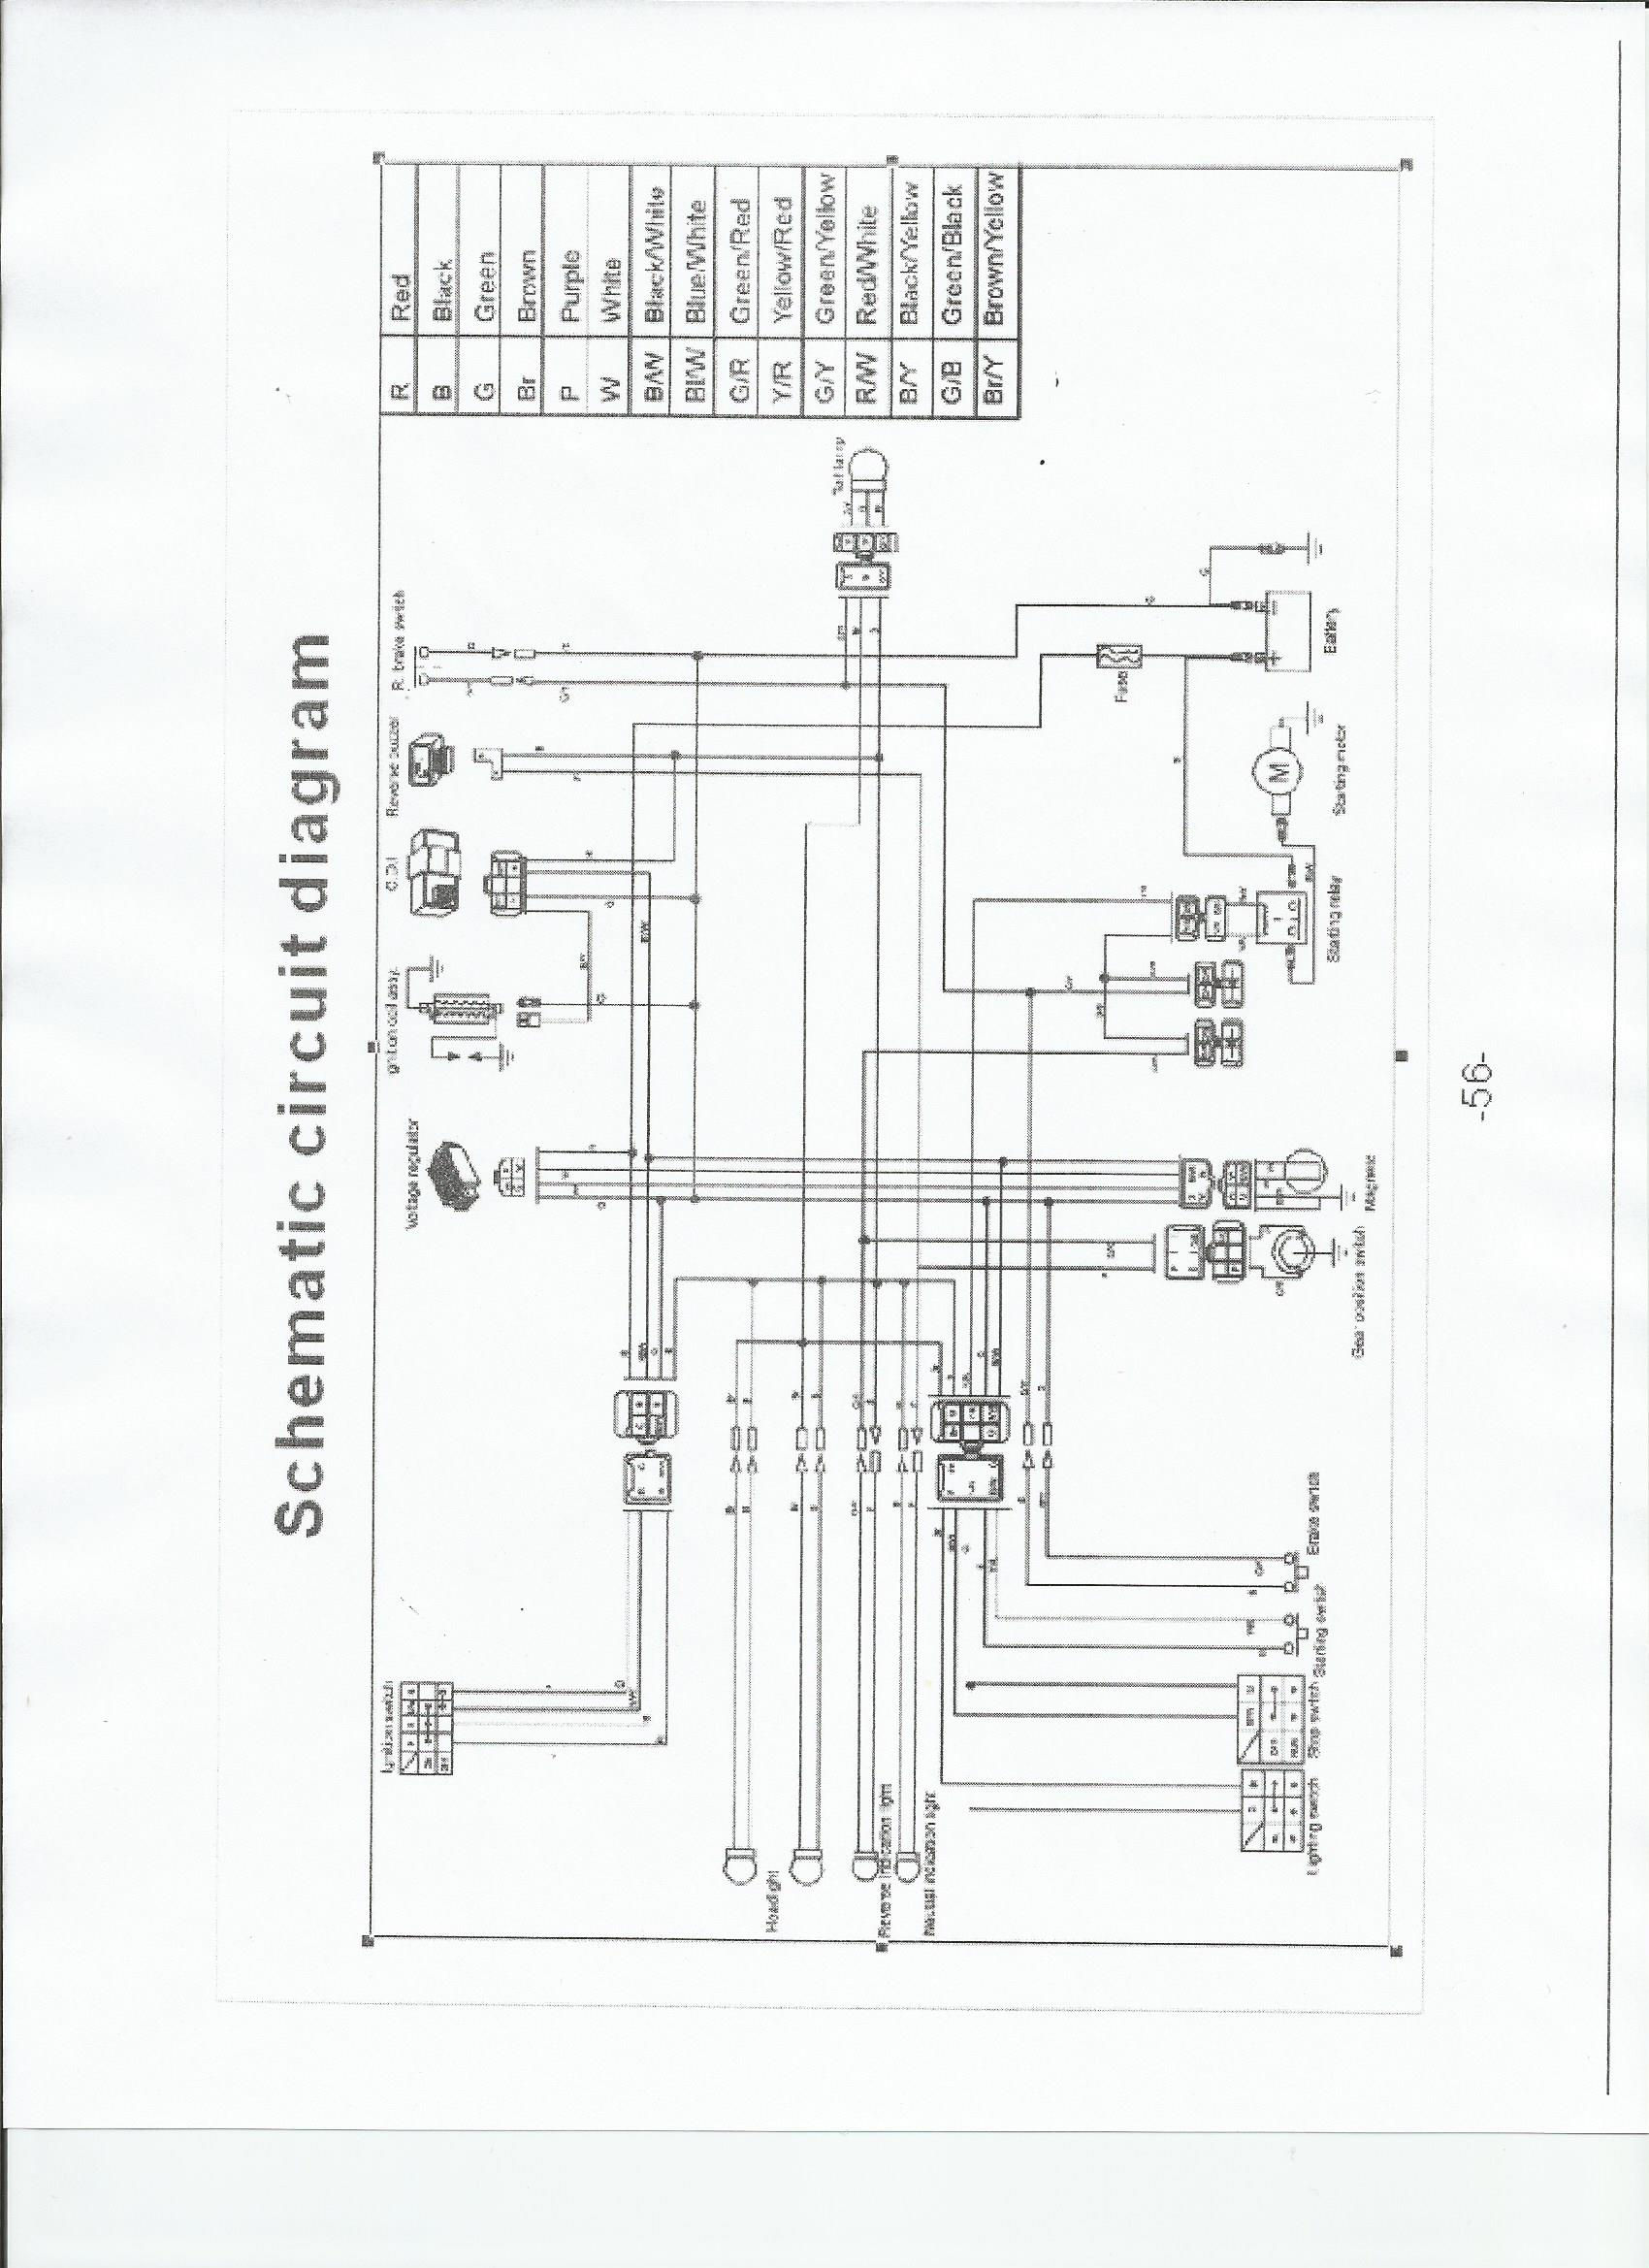 Suzuki 50cc Scooter Wiring Diagram Free Wiring Diagrams 2 likewise Gy6 150 Wiring Diagram as well Tao Tao 150 Wiring Diagram further Loncin 4 Wheeler Wiring Diagram as well Scooter Gy6 Ignition Switch Wiring Diagram. on tao 50cc wiring diagrams